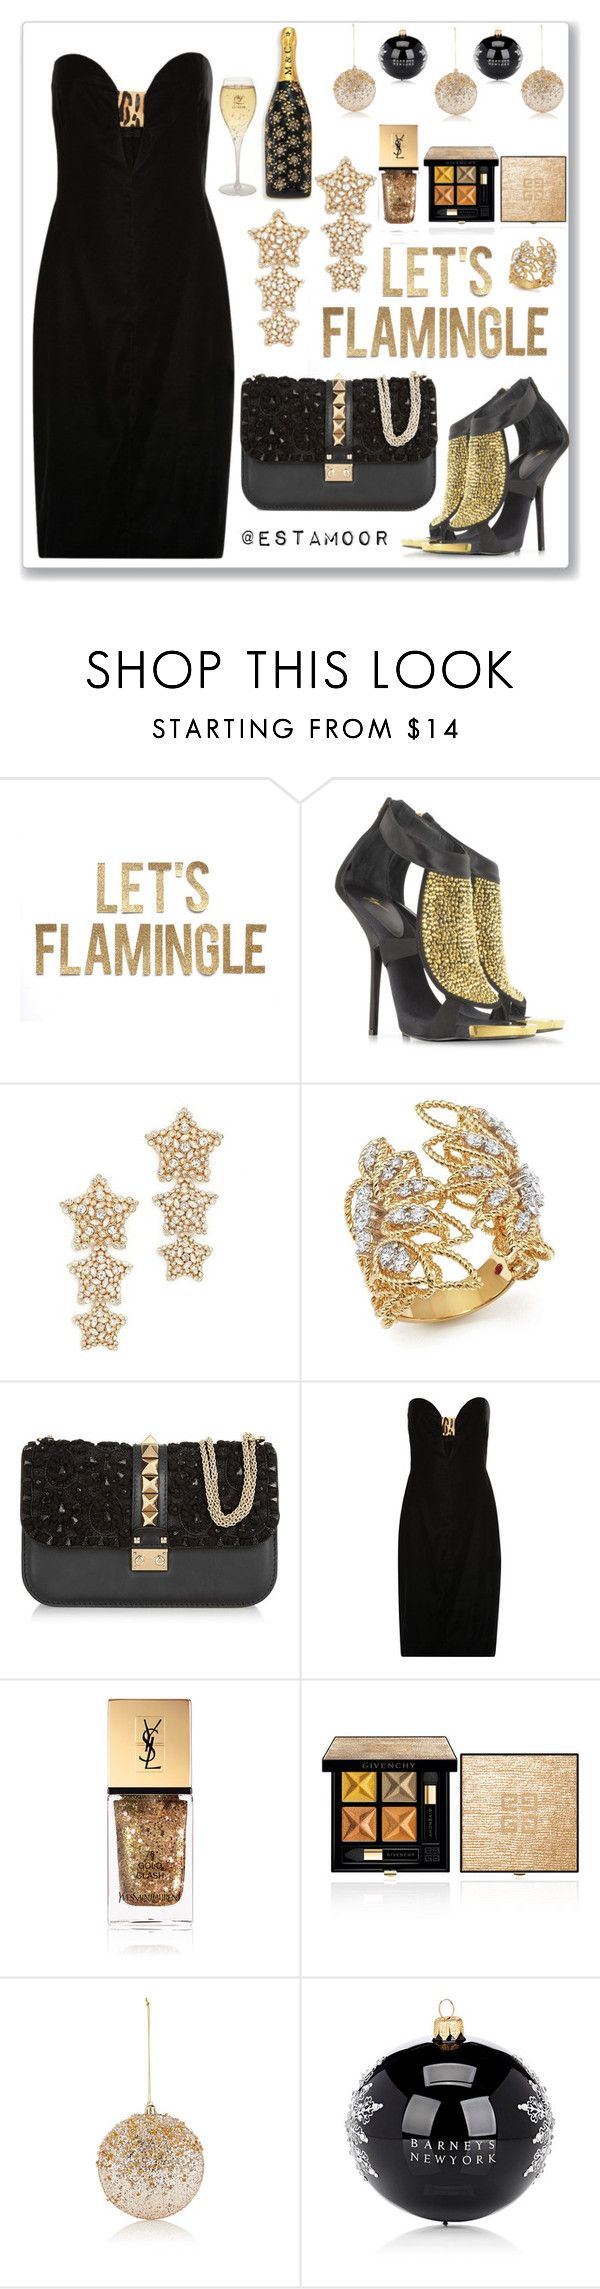 """""""gold"""" by estamoor on Polyvore featuring мода, Giuseppe Zanotti, Kate Spade, Roberto Coin, Valentino, Tom Ford, Yves Saint Laurent, Gold Eagle, Barneys New York и Marc Jacobs"""